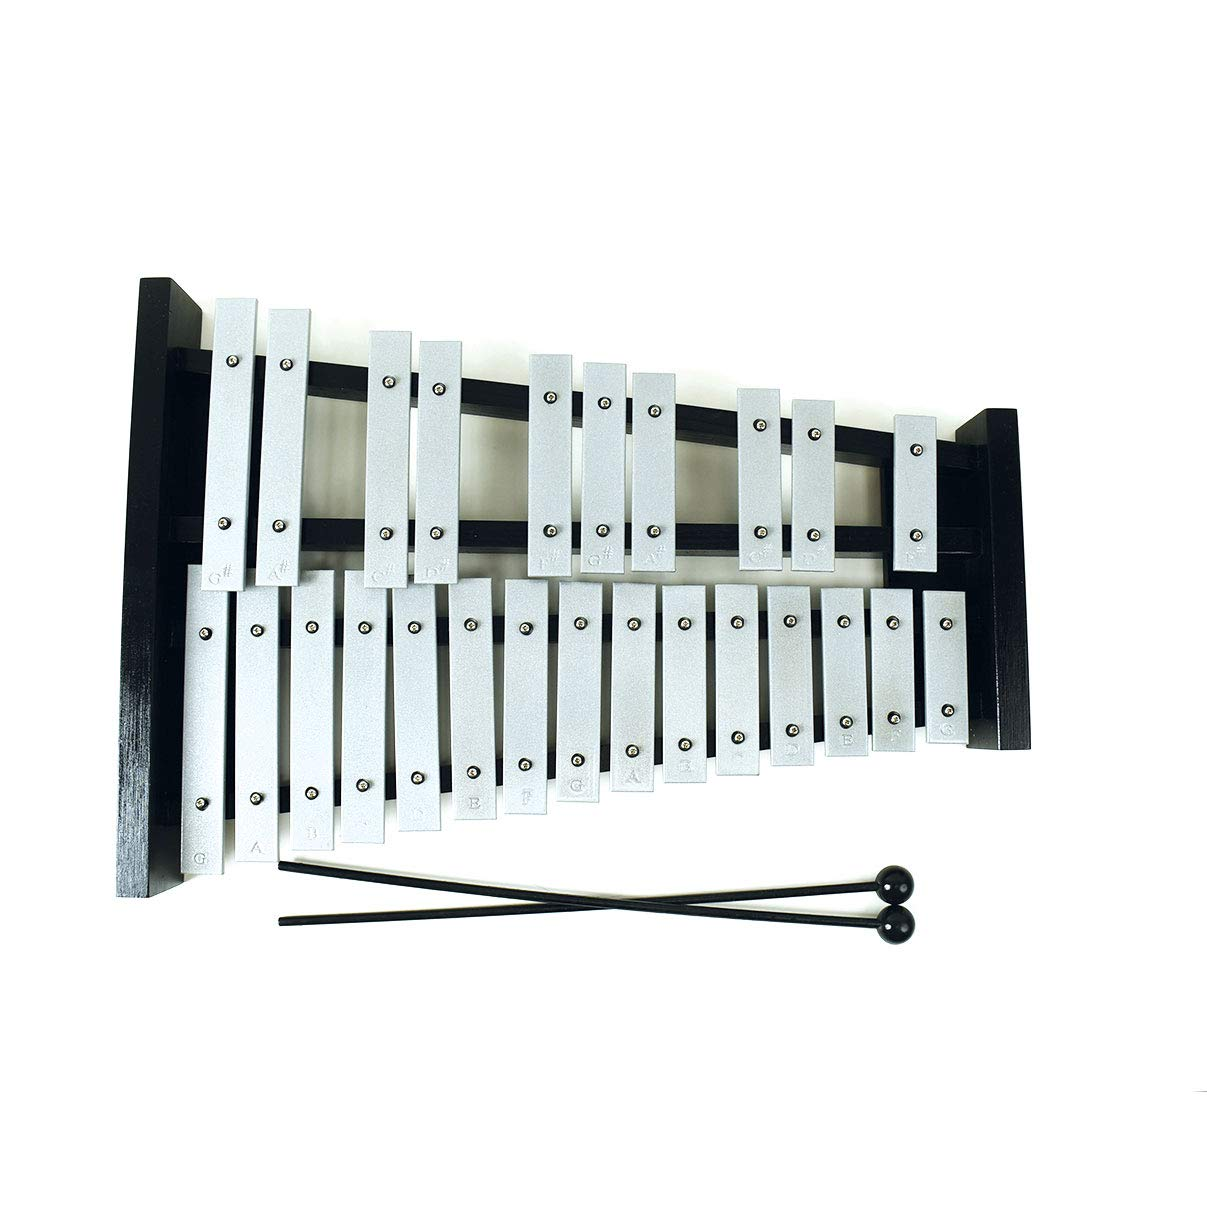 Professional Large Black Wooden Soprano Glockenspiel Xylophone with 25 Metal Keys for Adults and Kids - Includes 2 Plastic Beaters by Cara & Co